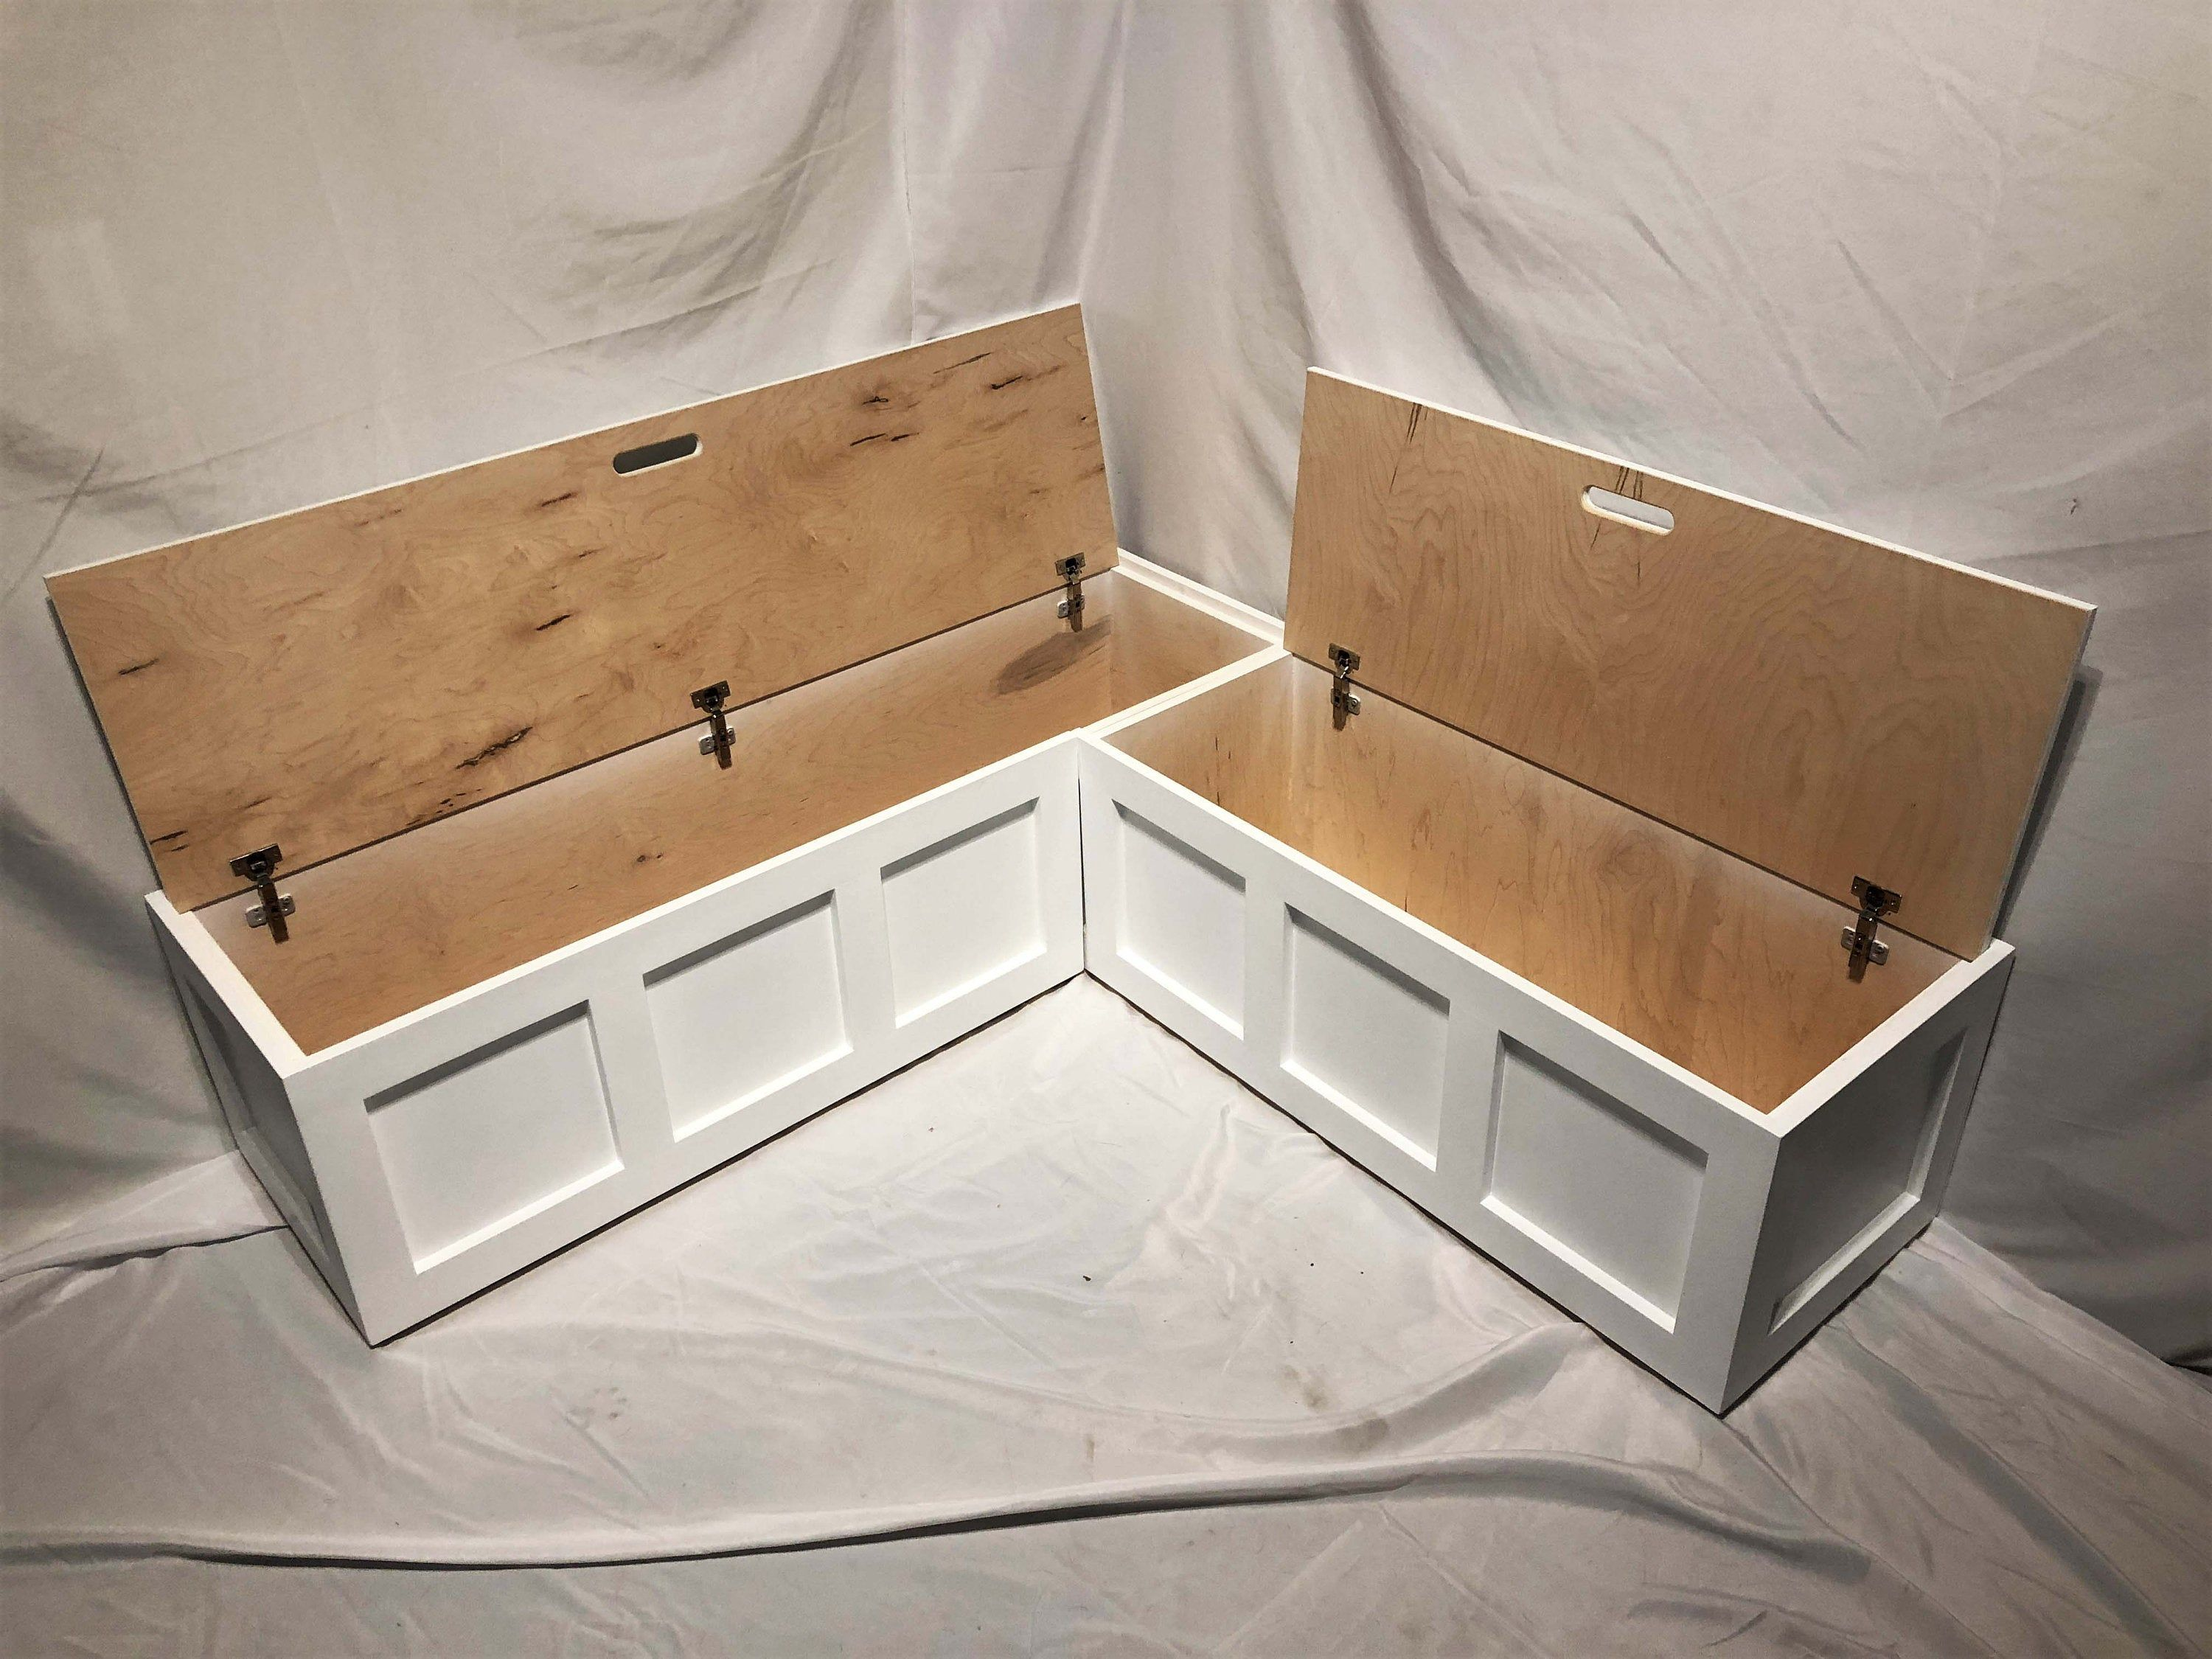 Corner Bench Set Shaker Banquette Bench Top Opening Etsy In 2020 Banquette Bench Kitchen Nook Bench Banquette Seating In Kitchen